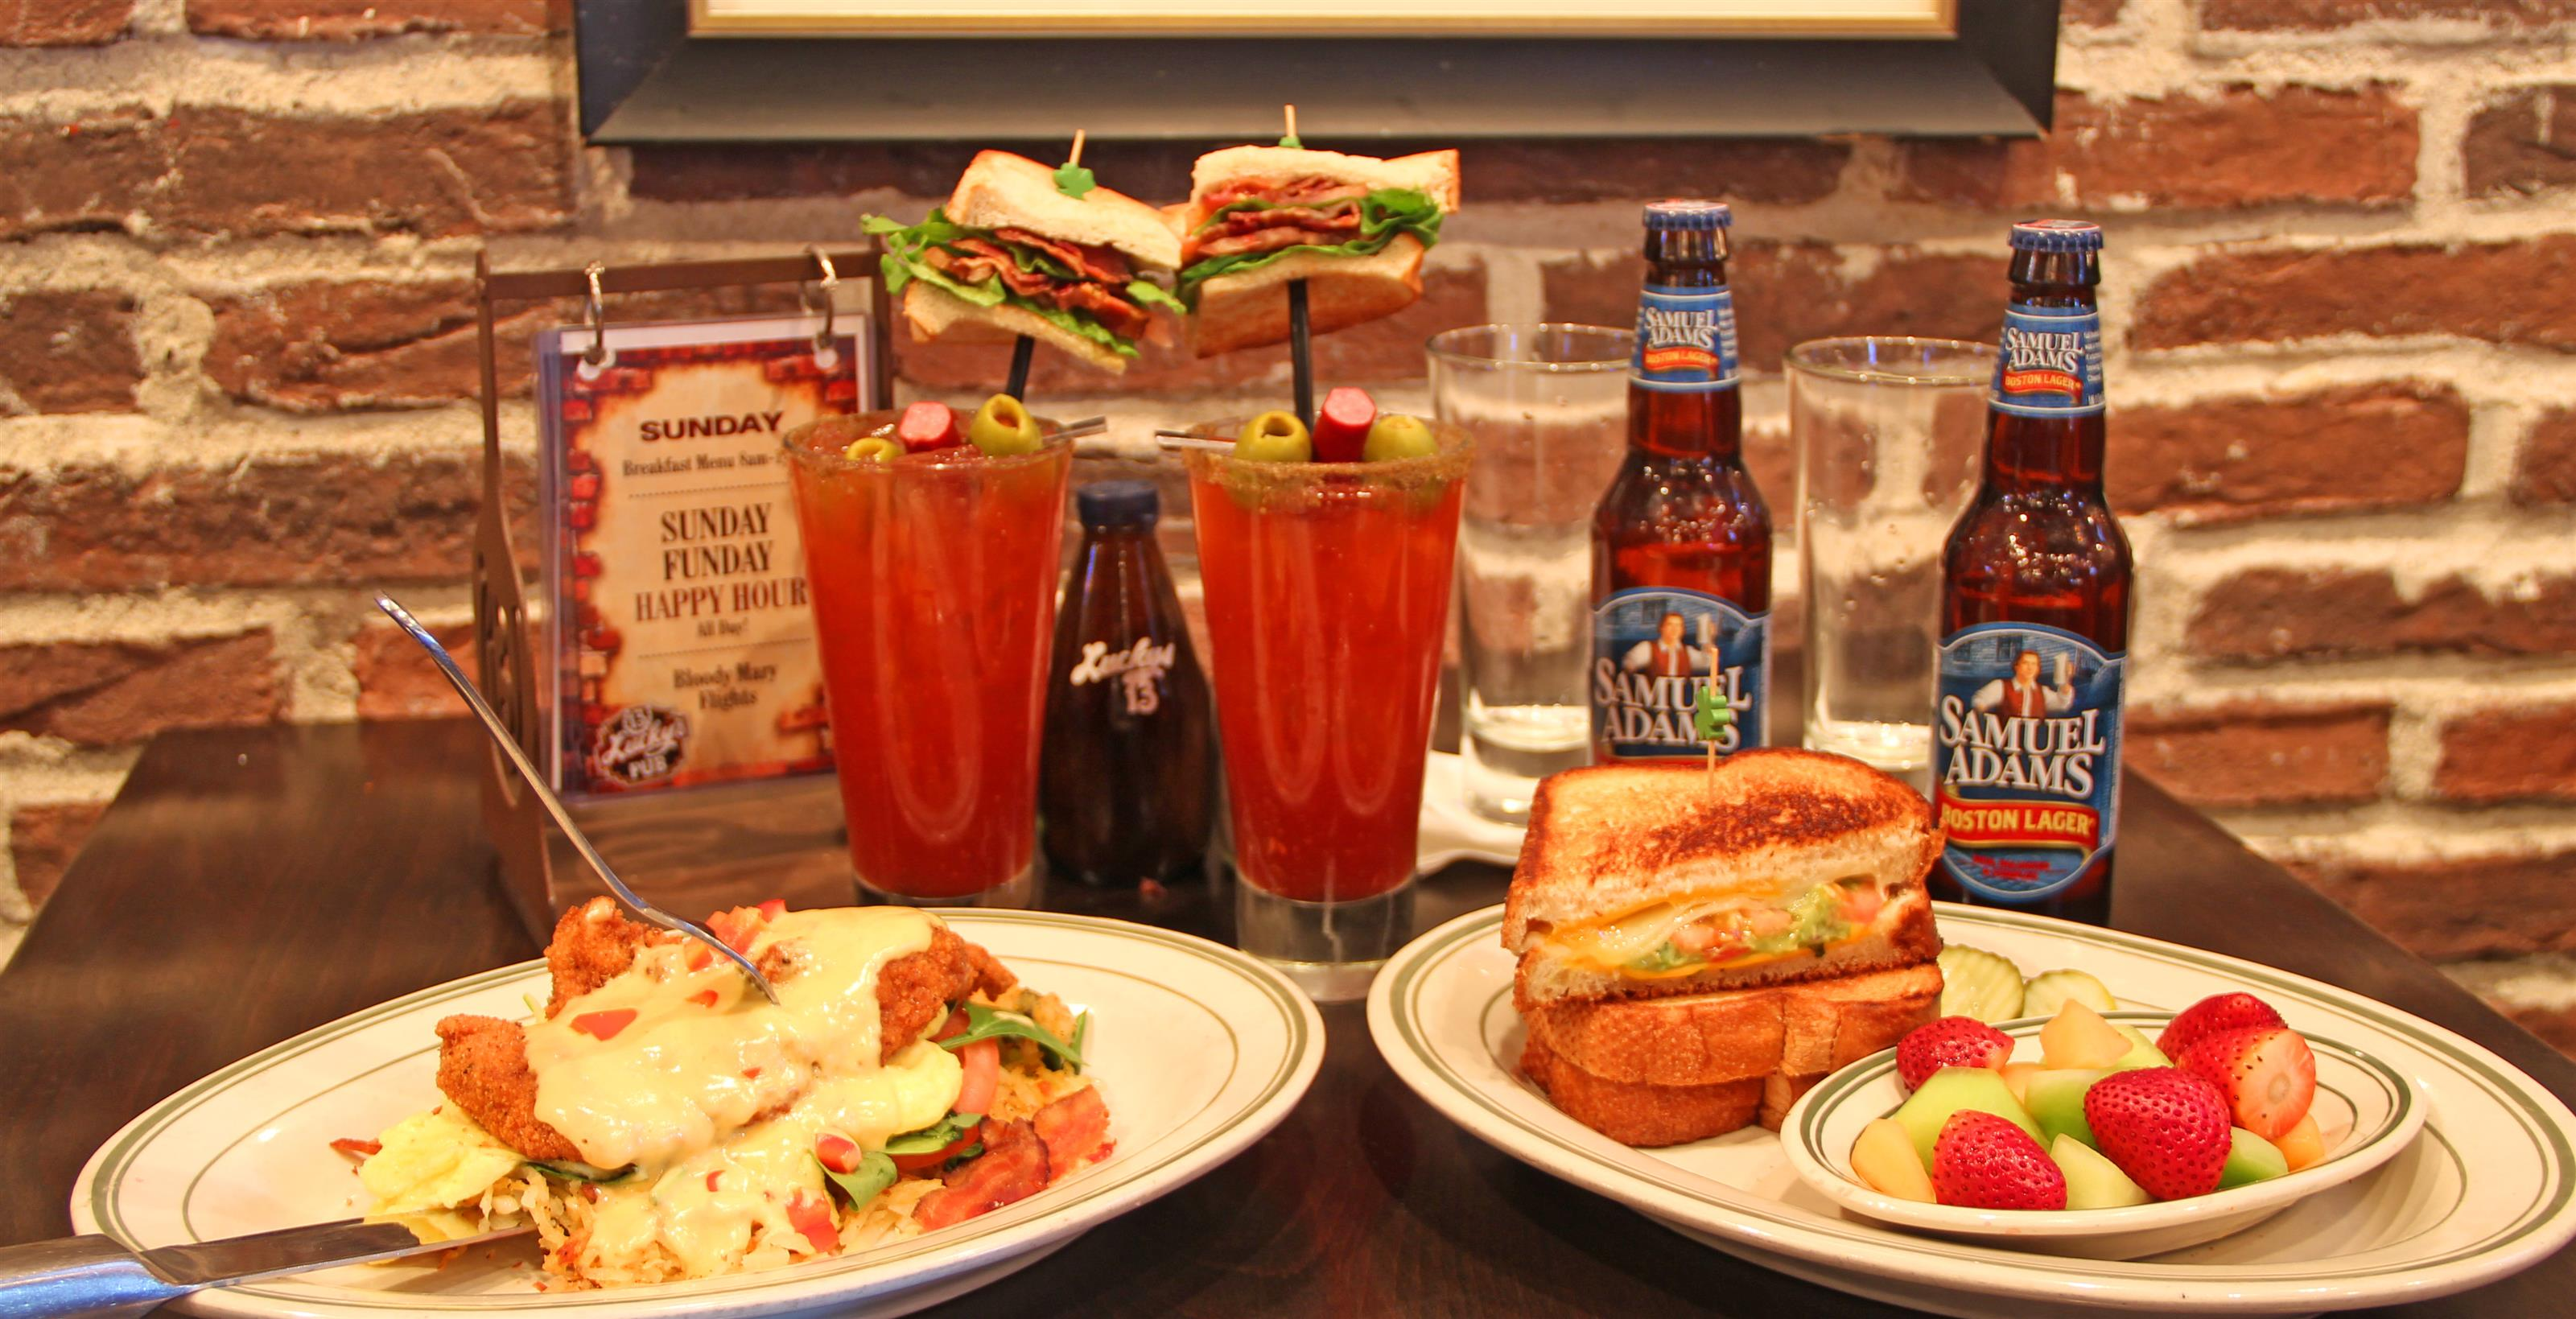 Fried fish plate next to plate with sandwich and fruit salad in front of Samuel Adams beer bottles and bloody marys.